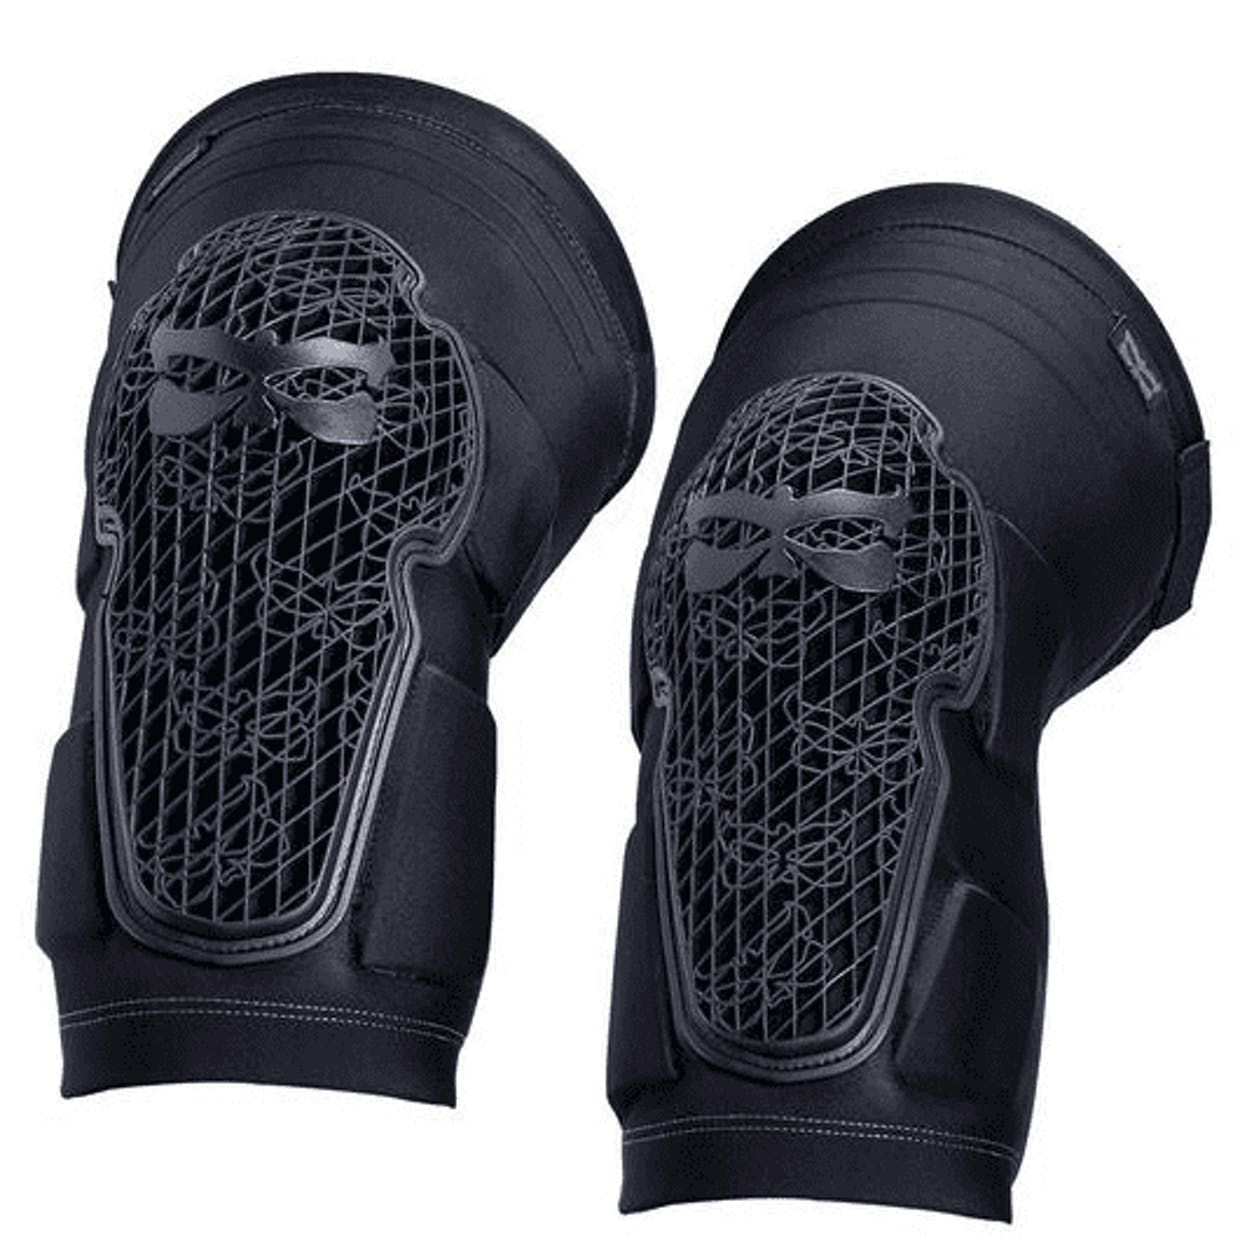 What king of elbow pads and gloves?